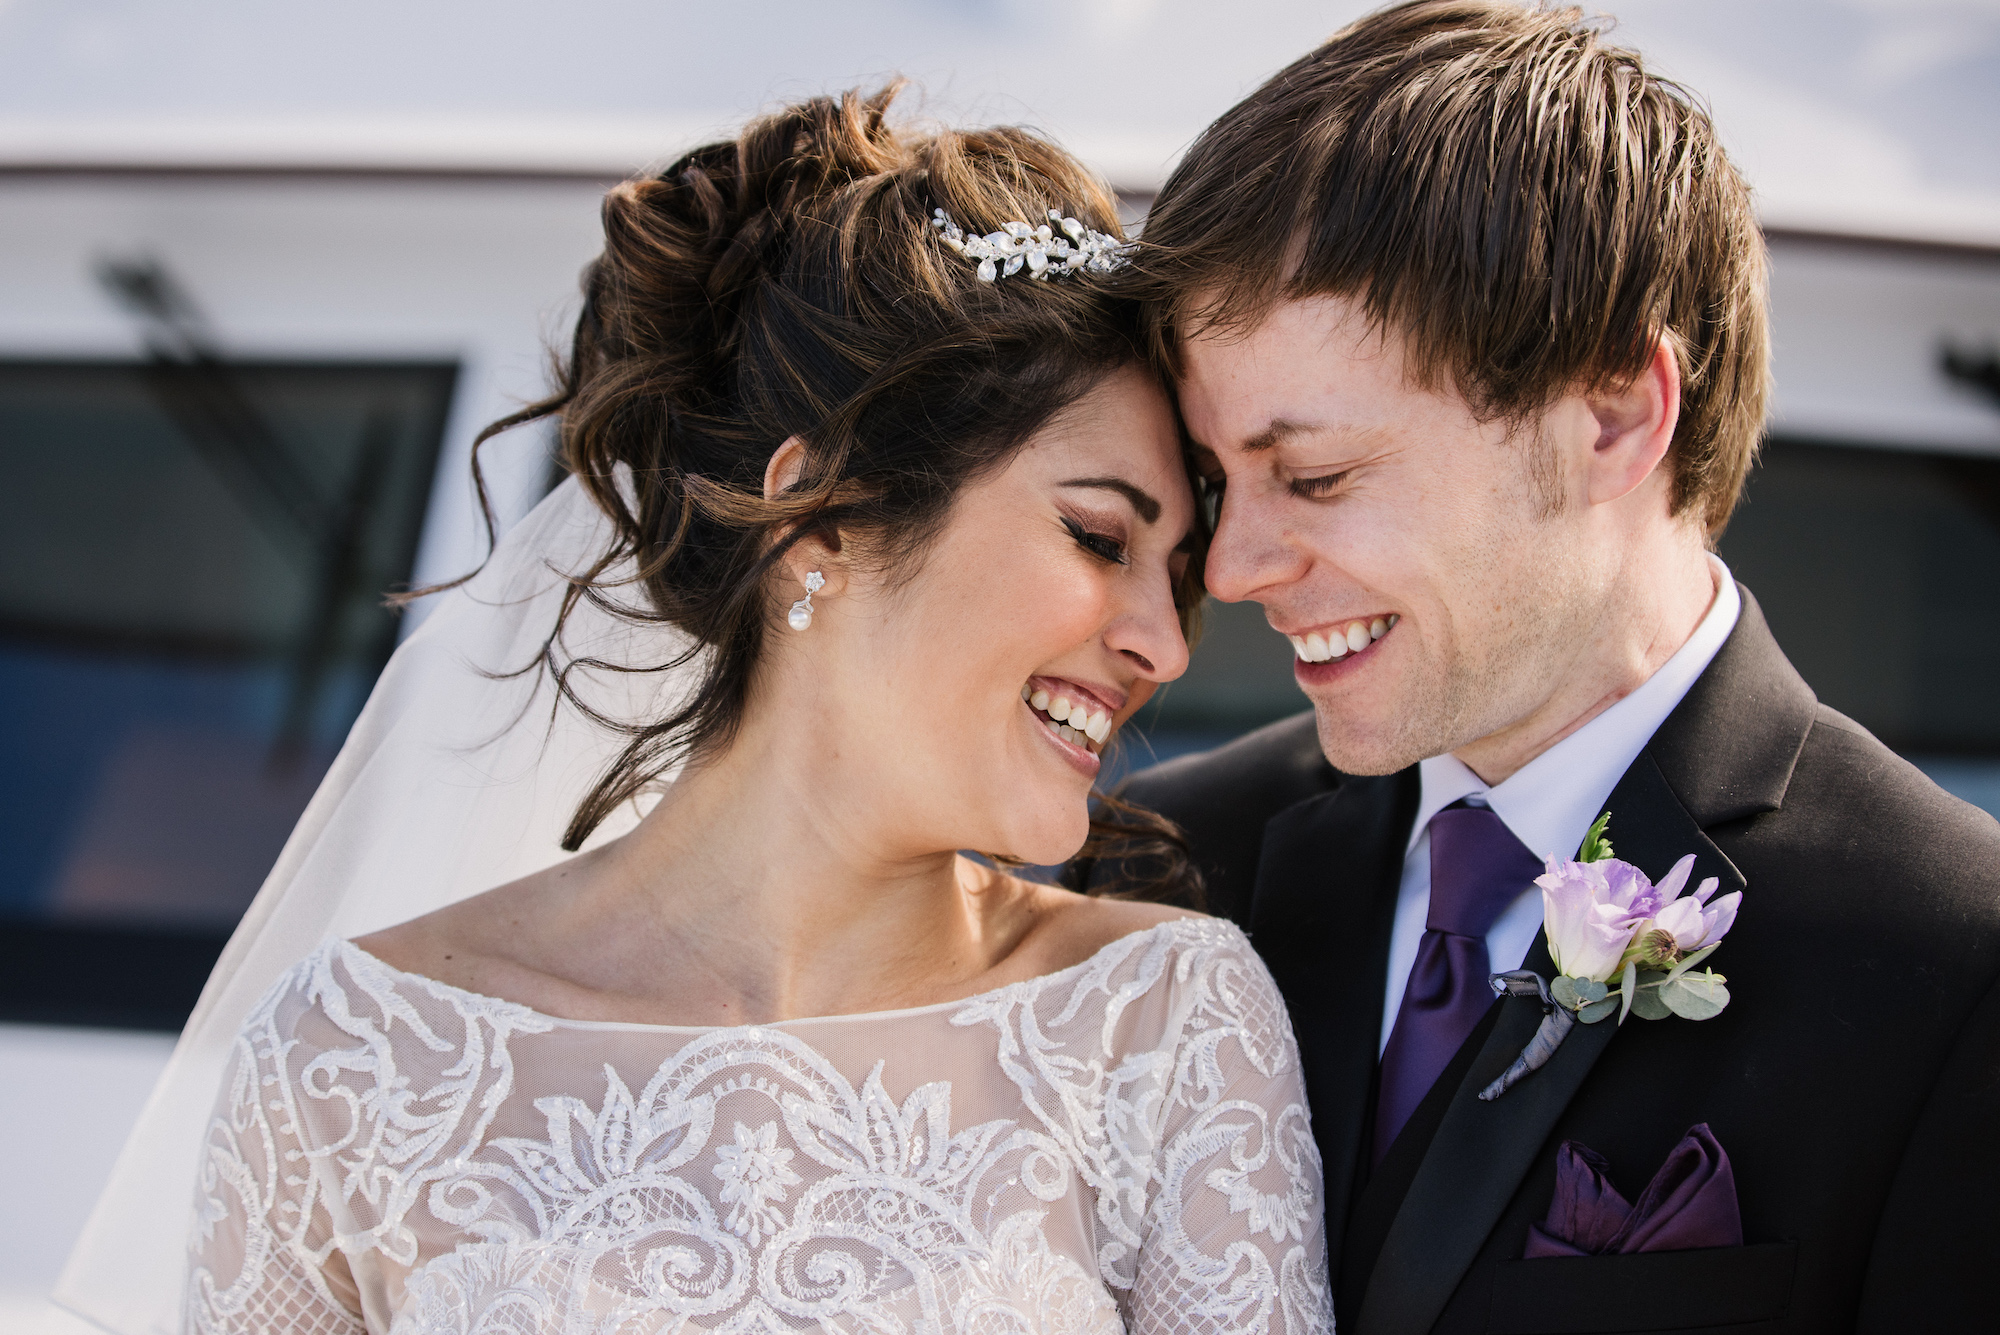 bride and groom portraits   bride with boat neck sheer lace wedding dress   Dillinger Studios Minneapolis Photographer   Mexican American fusion wedding   Sixpence Events & Planning Minnesota wedding planner .jpg